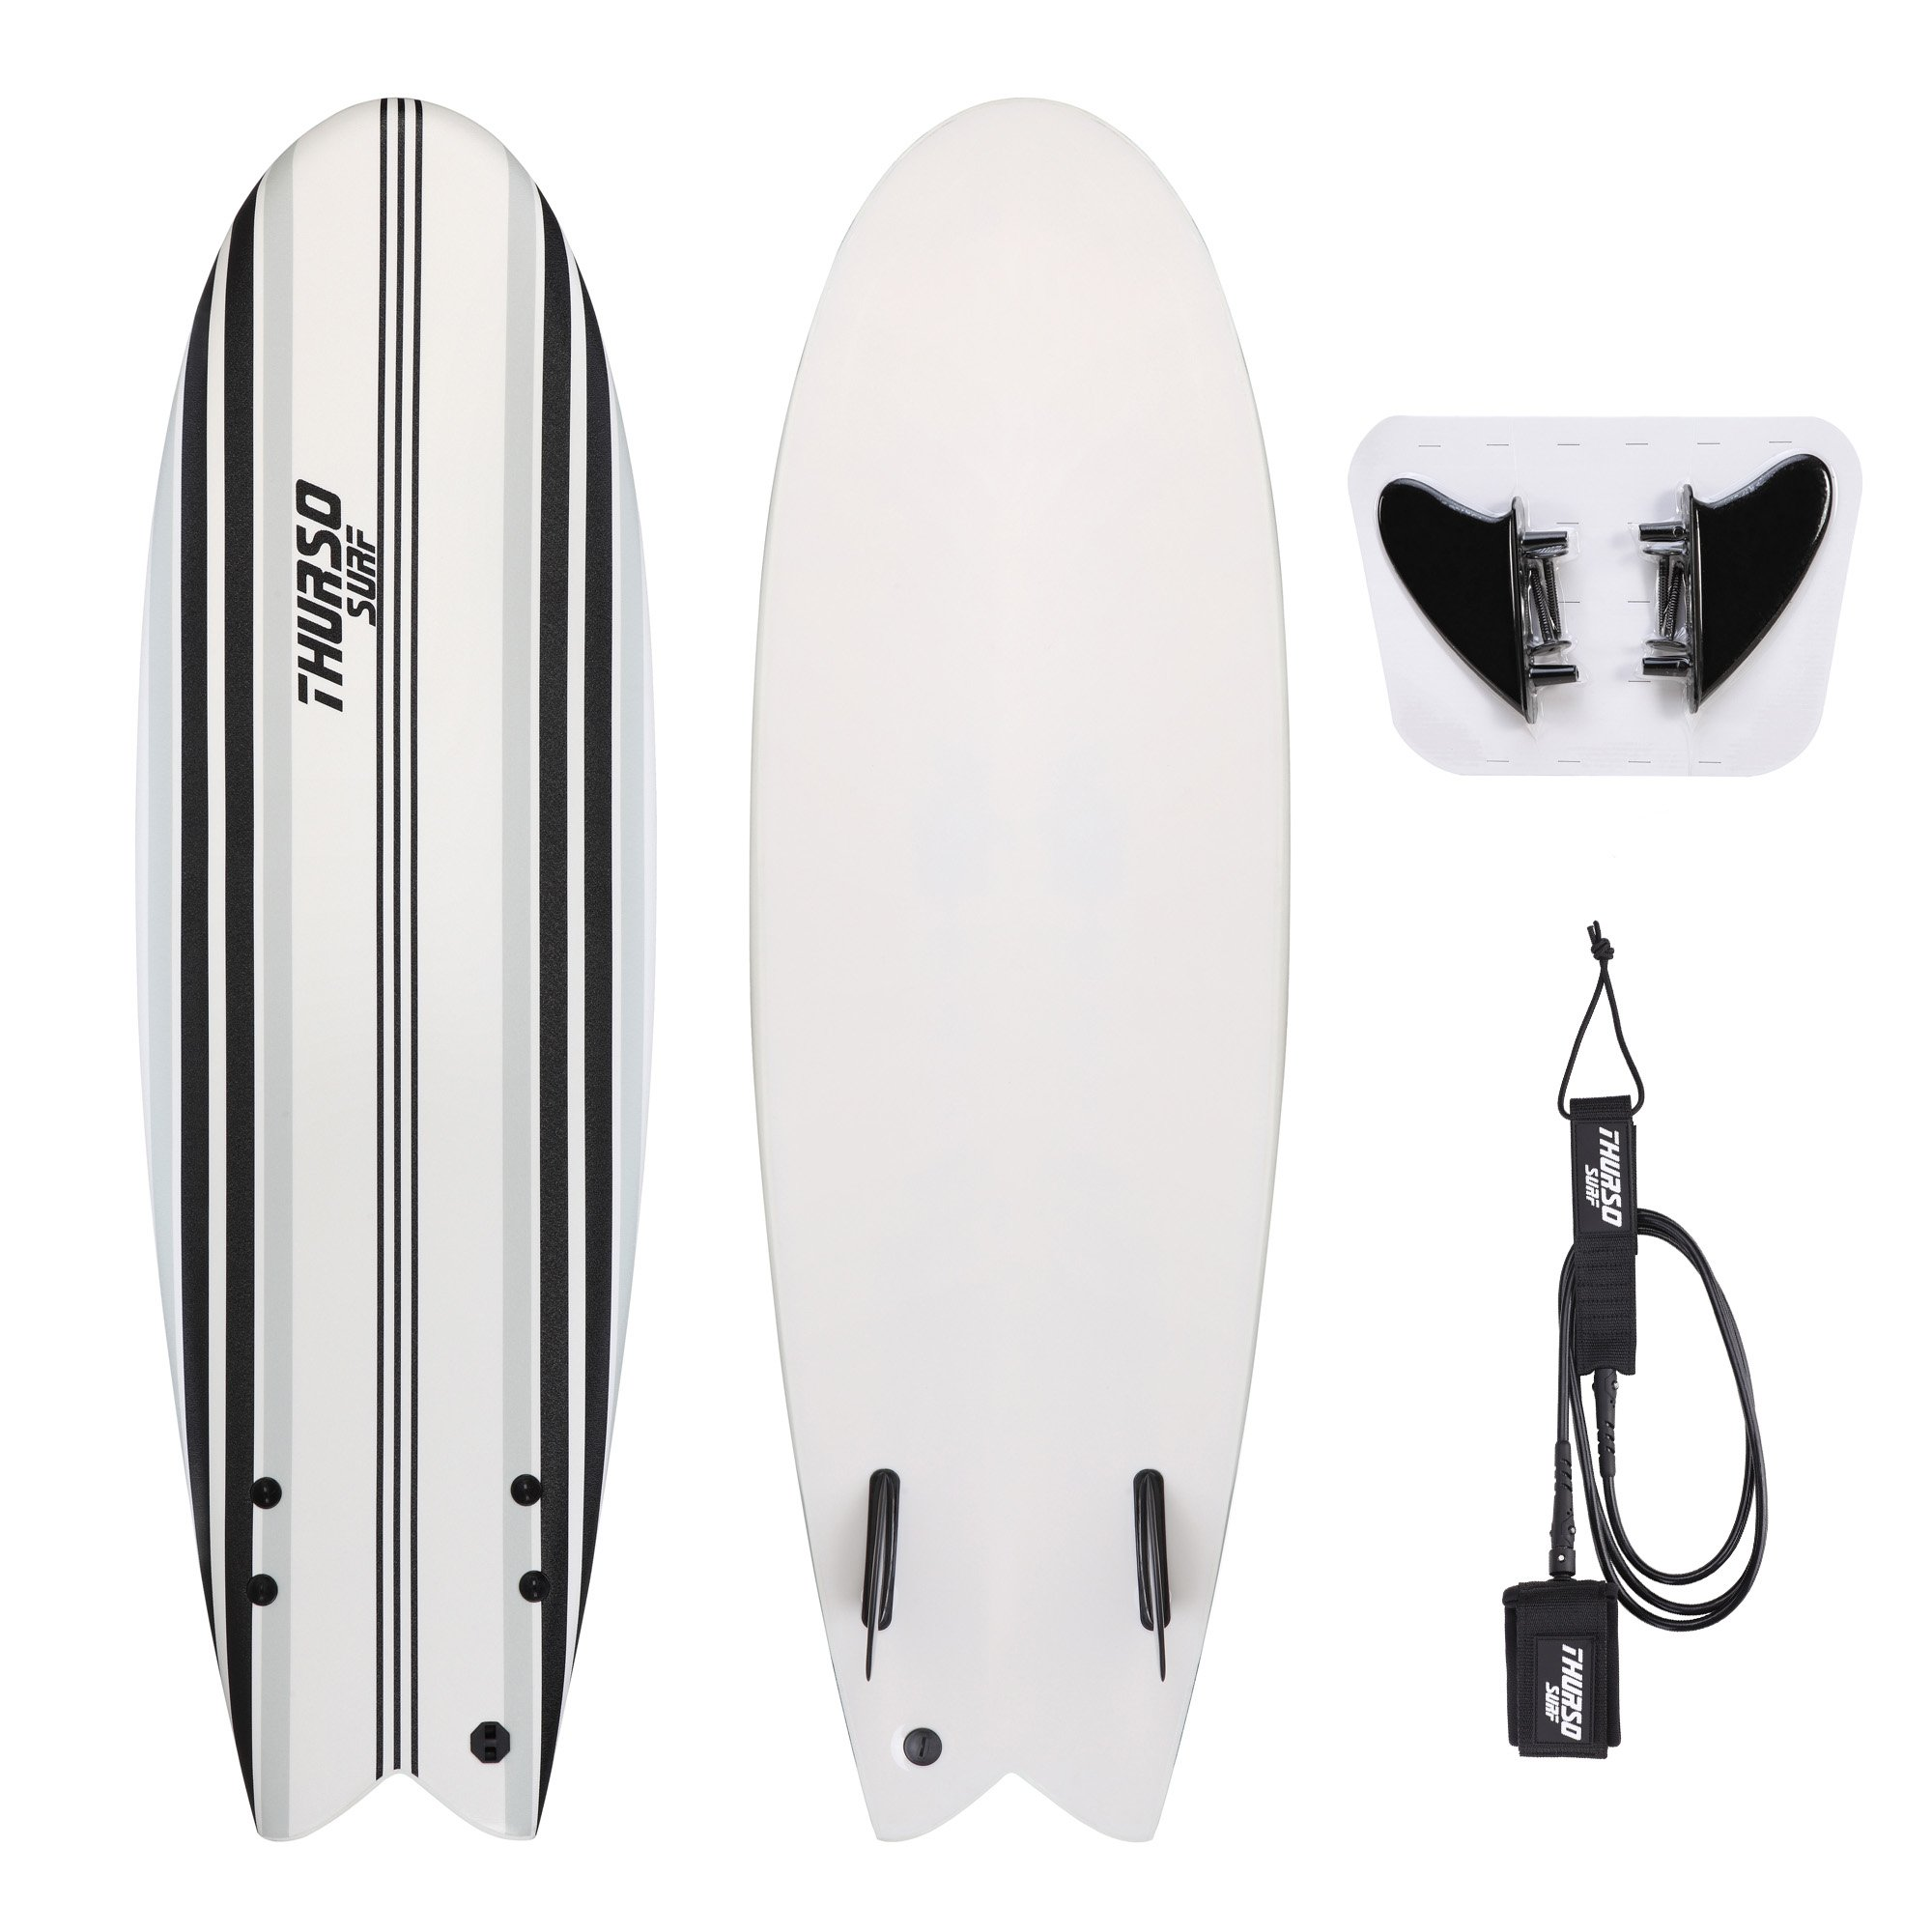 THURSO SURF Lancer 5'10'' Fish Soft Top Surfboard Package Includes Twin Fins Double Stainless Steel Swivel Leash EPS Core IXPE Deck HDPE Slick Bottom Built in Non Slip Deck Grip (Gray) by THURSO SURF